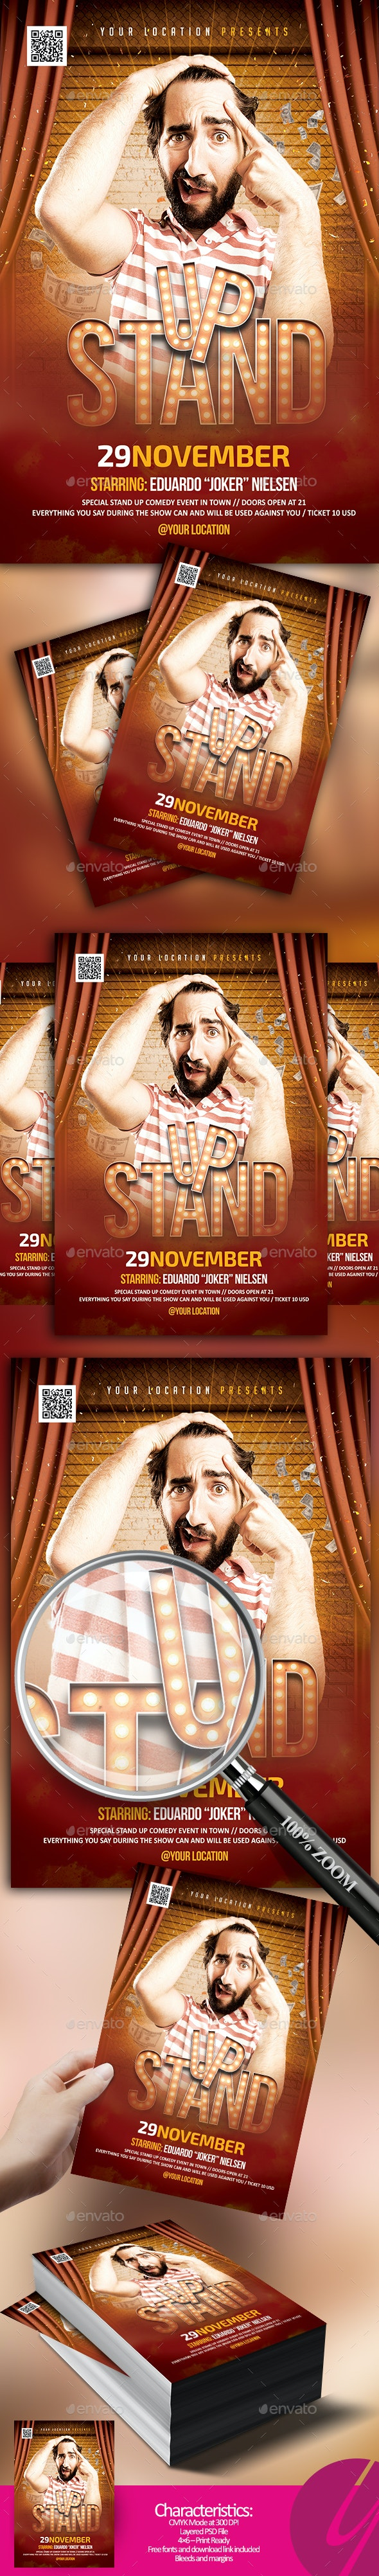 Stand Up Comedy Flyer - Clubs & Parties Events